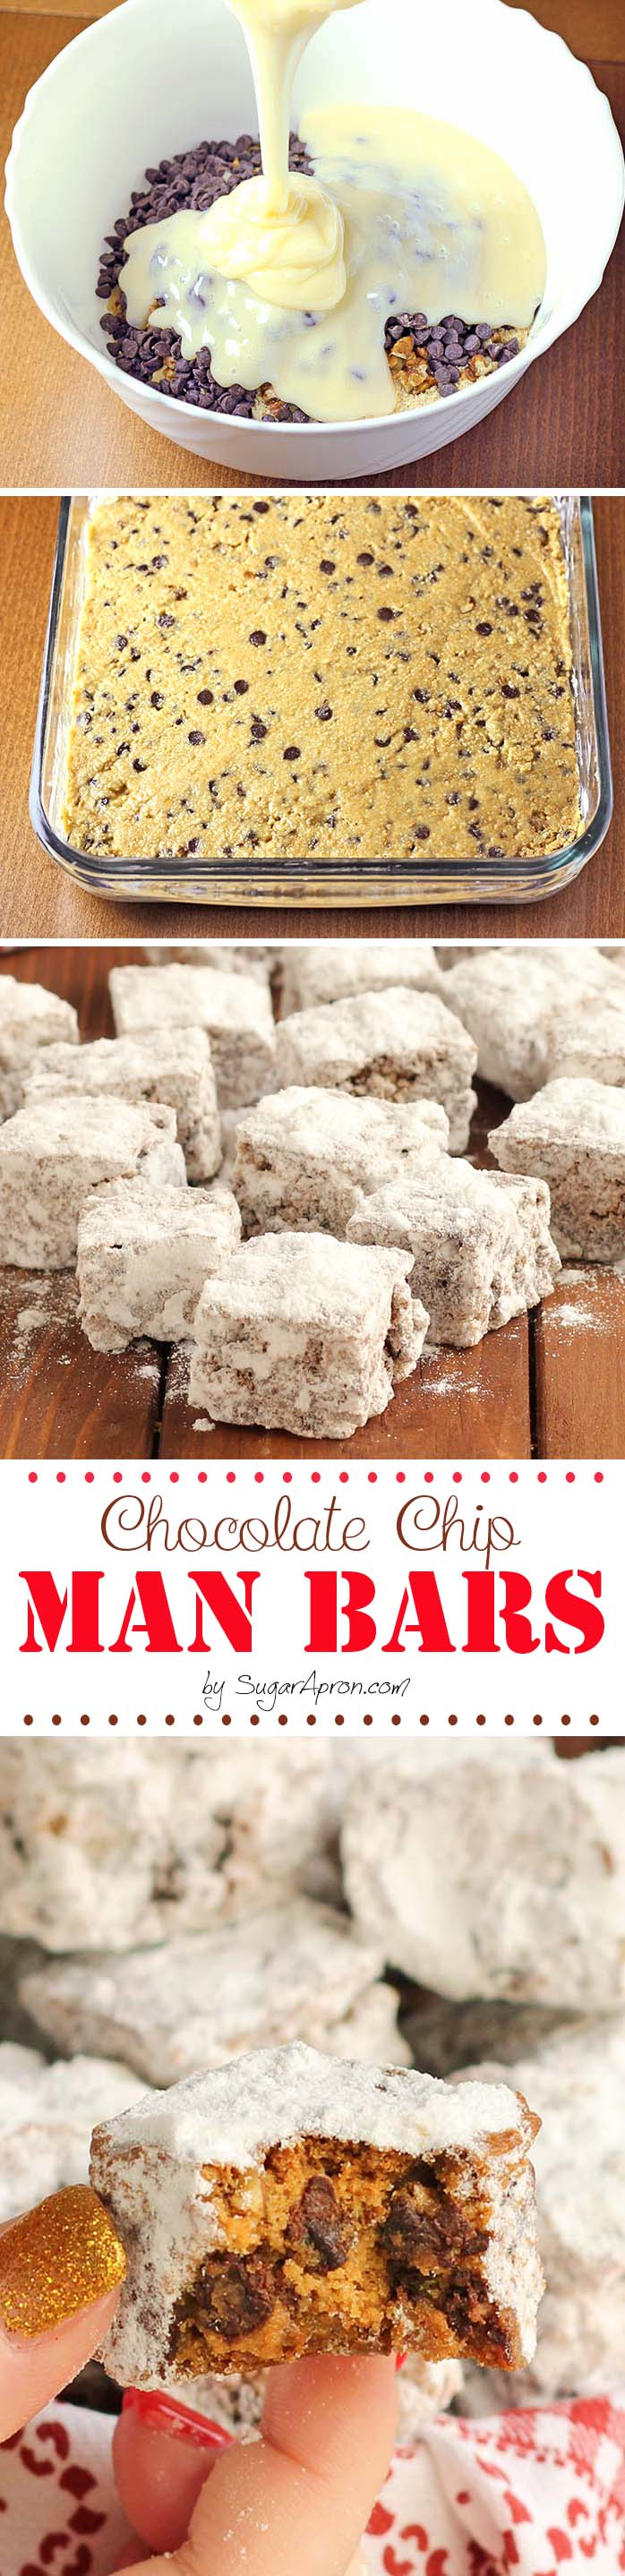 These bars are the easiest things to make EVER. One bowl – mix, bake and toss in icing sugar.